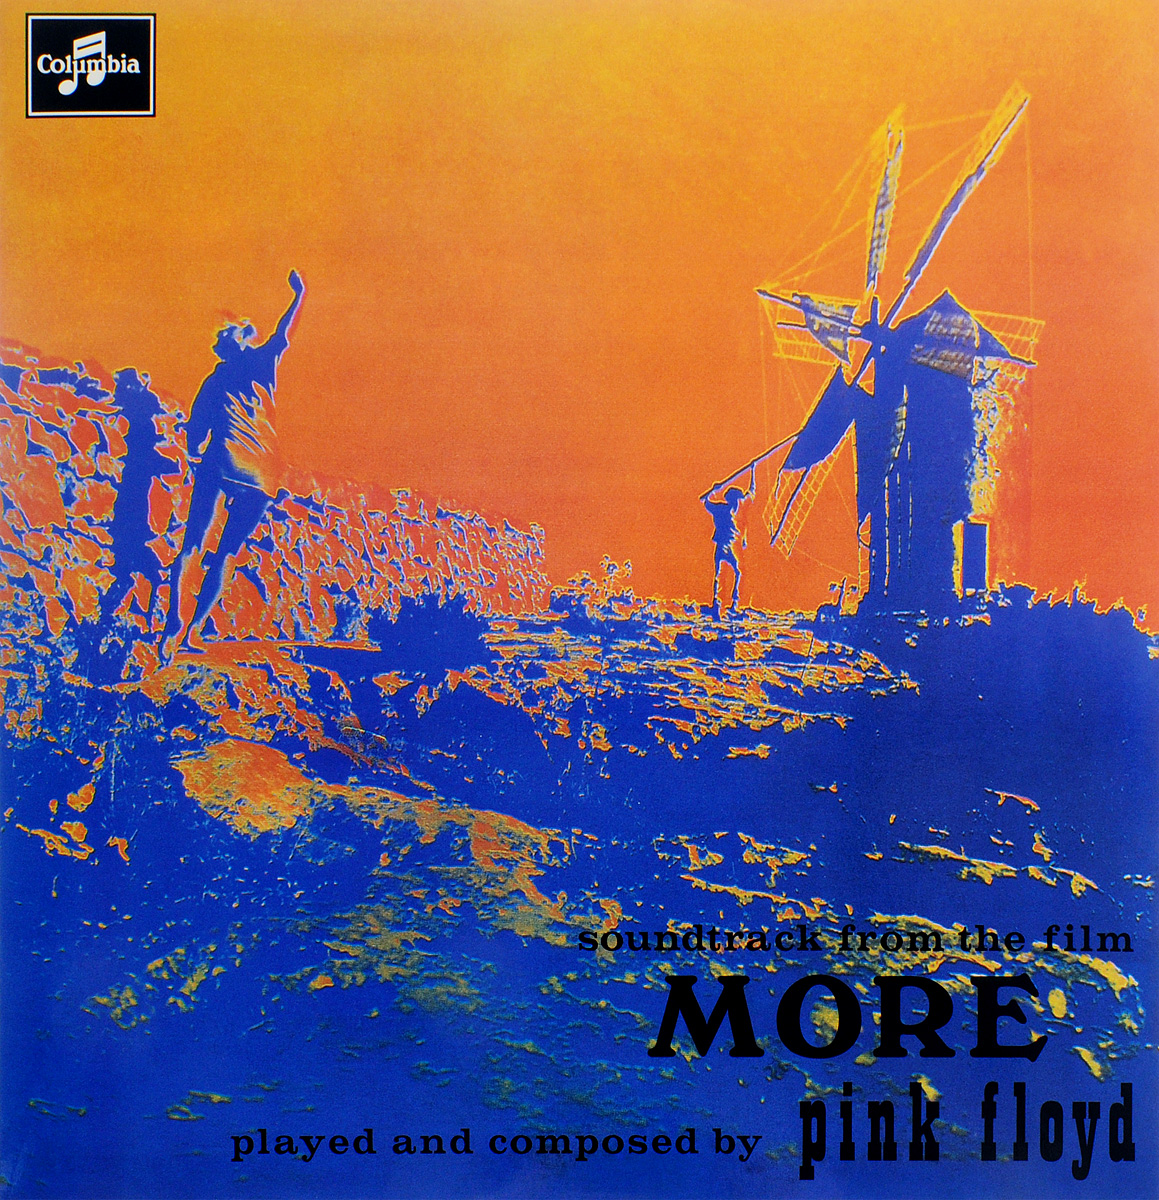 Pink Floyd. Soundtrack From The Film More (LP) pc200 7 pc200lc 7 pc220 7 pc300 7 6d102 excavator hydraulic pump proportional solenoid valve 702 21 07010 for komatsu